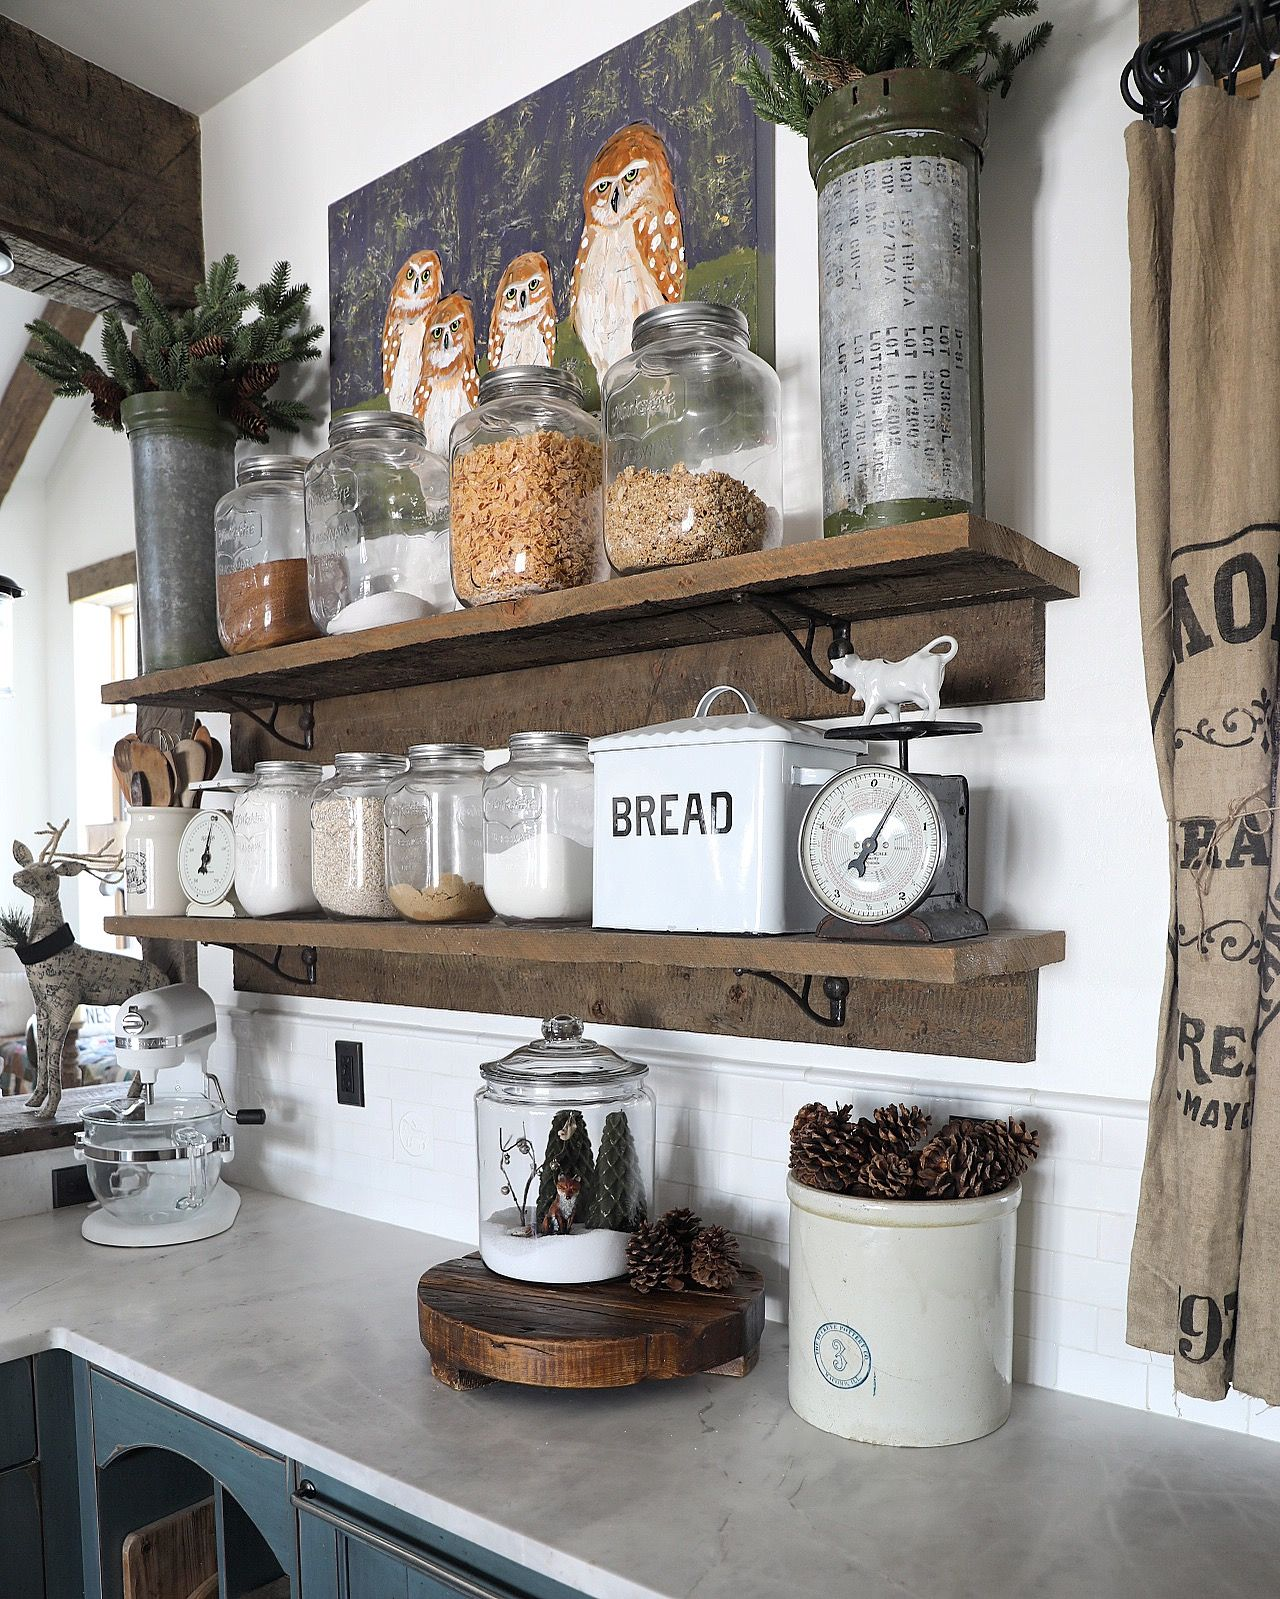 Country Style Kitchens 2013 Decorating Ideas: Pin By Catherine Pritzlaff On Re-Doing Home